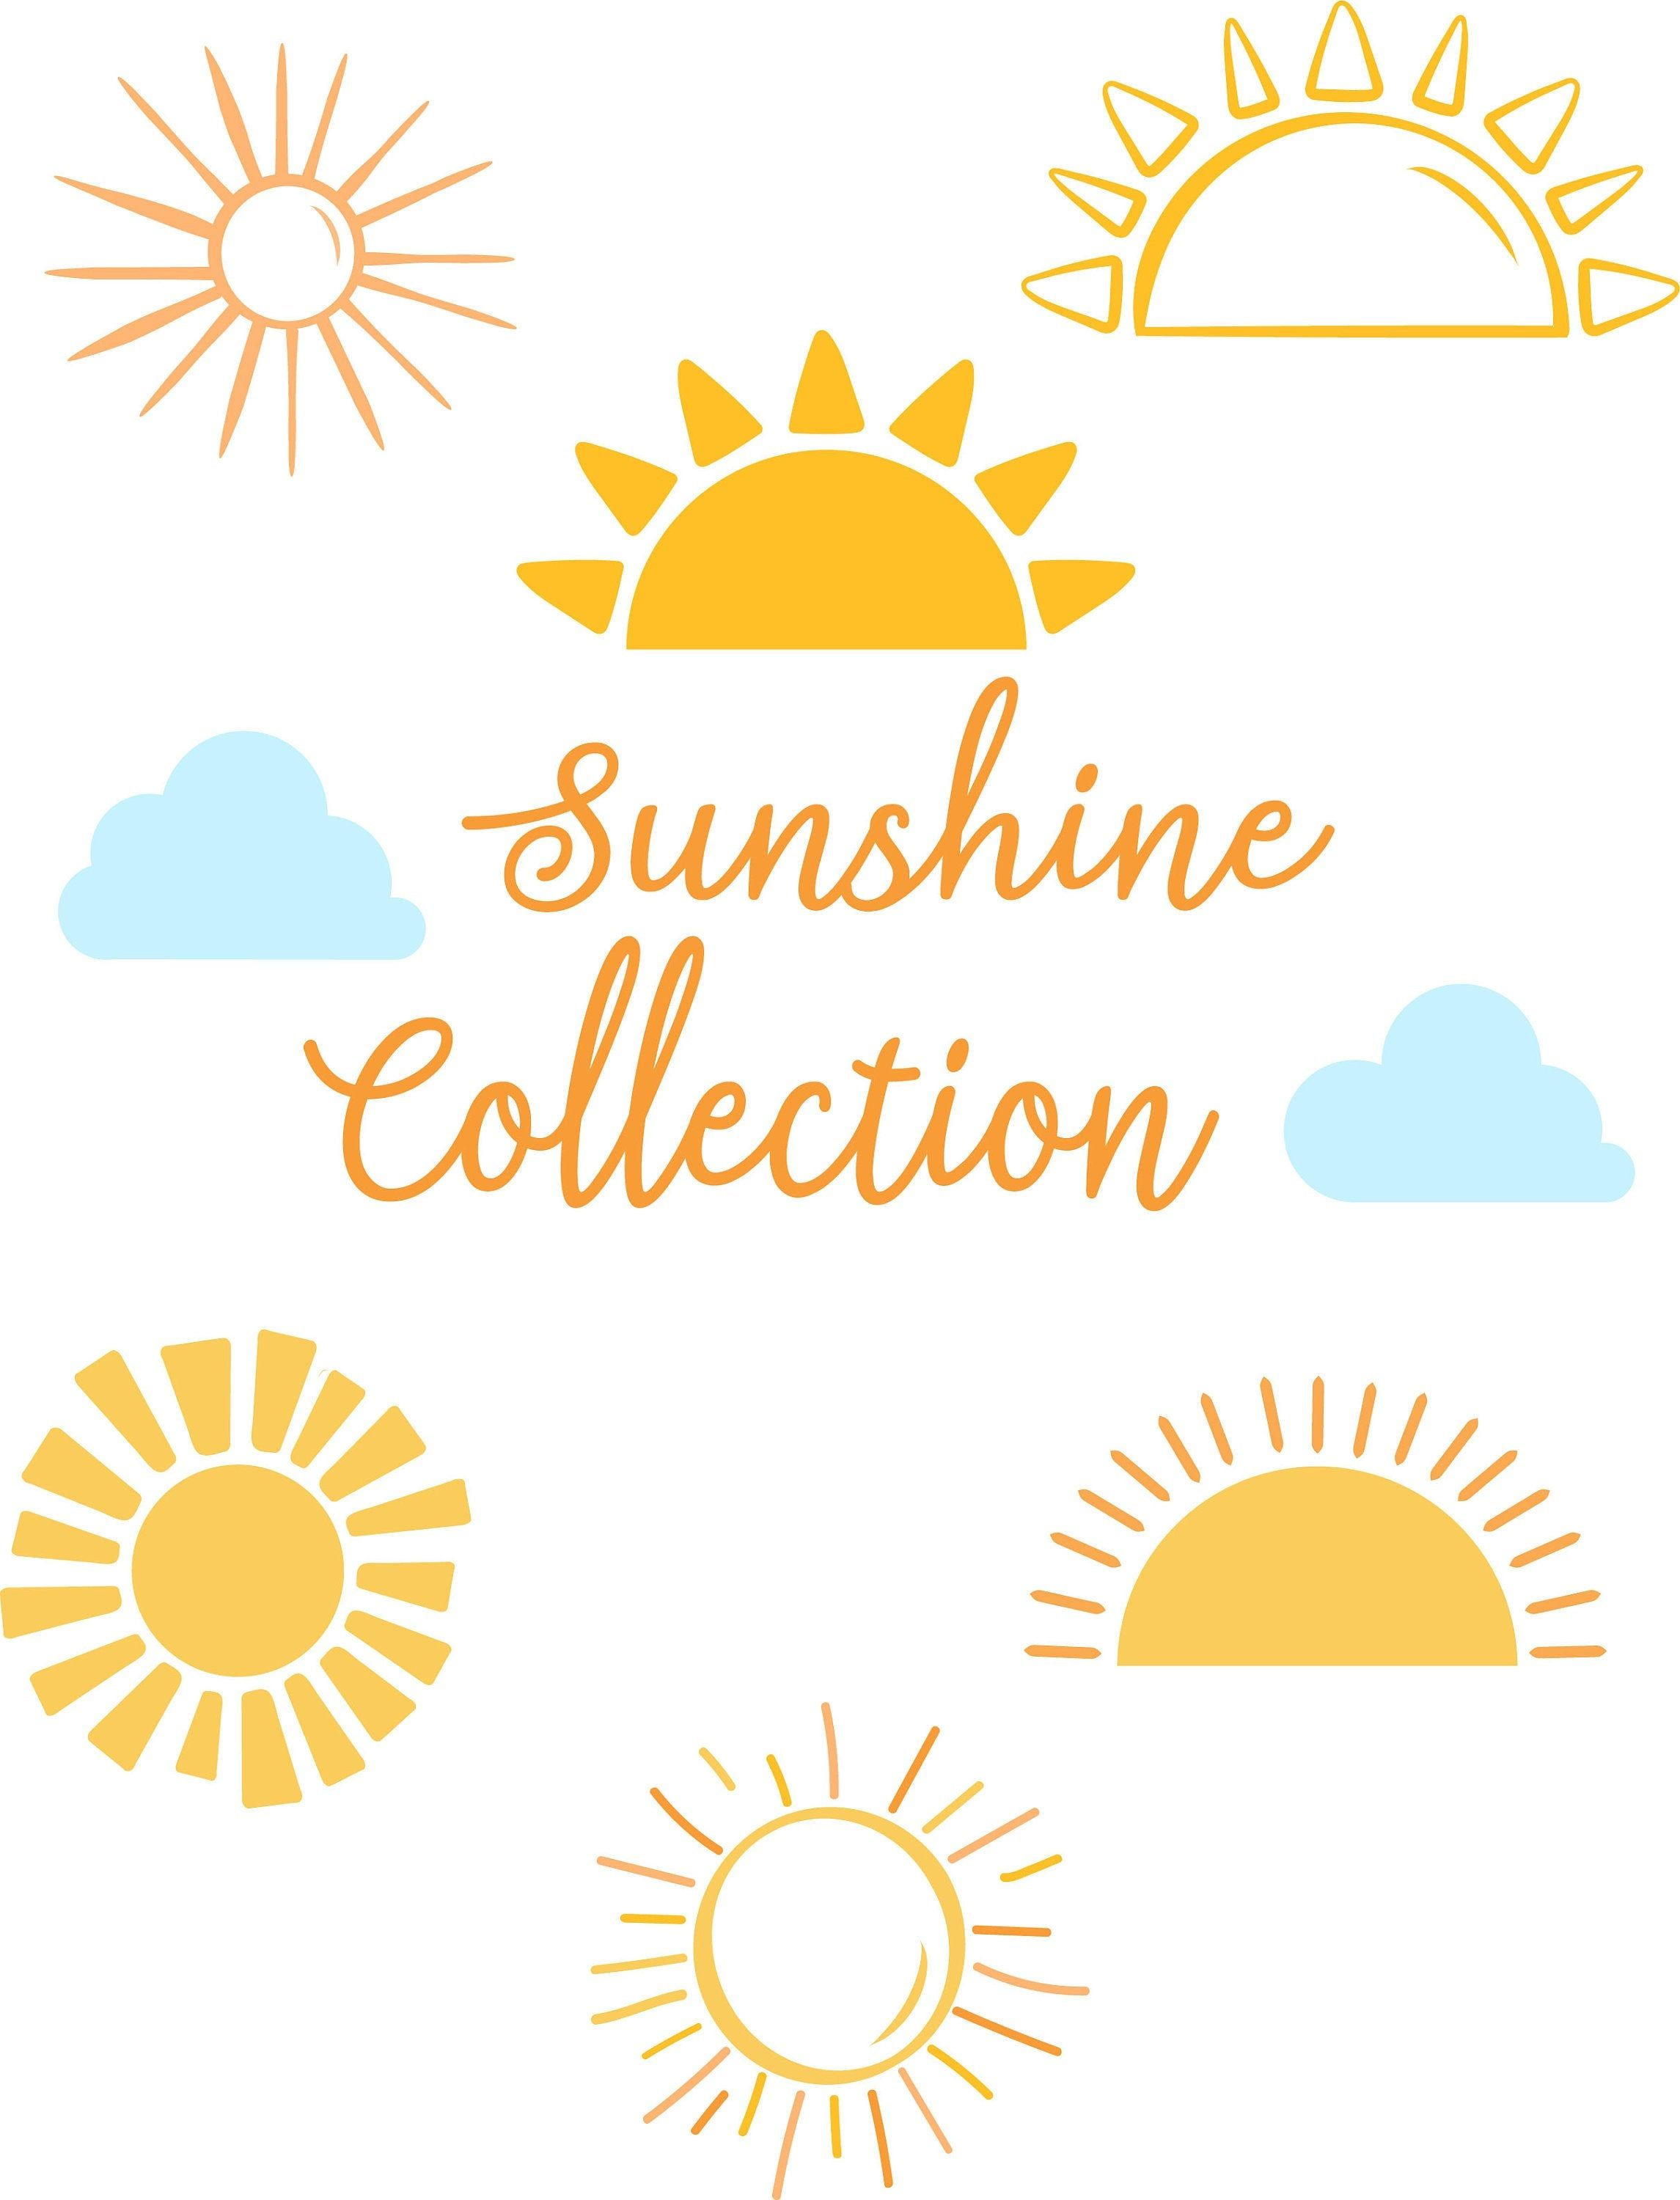 Bright Yellow Sunshine Clipart Sunshine Clipart Bright Yellow Png And Vector With Transparent Background For Free Download Clip Art Phone Wallpaper Boho Apple Watch Wallpaper